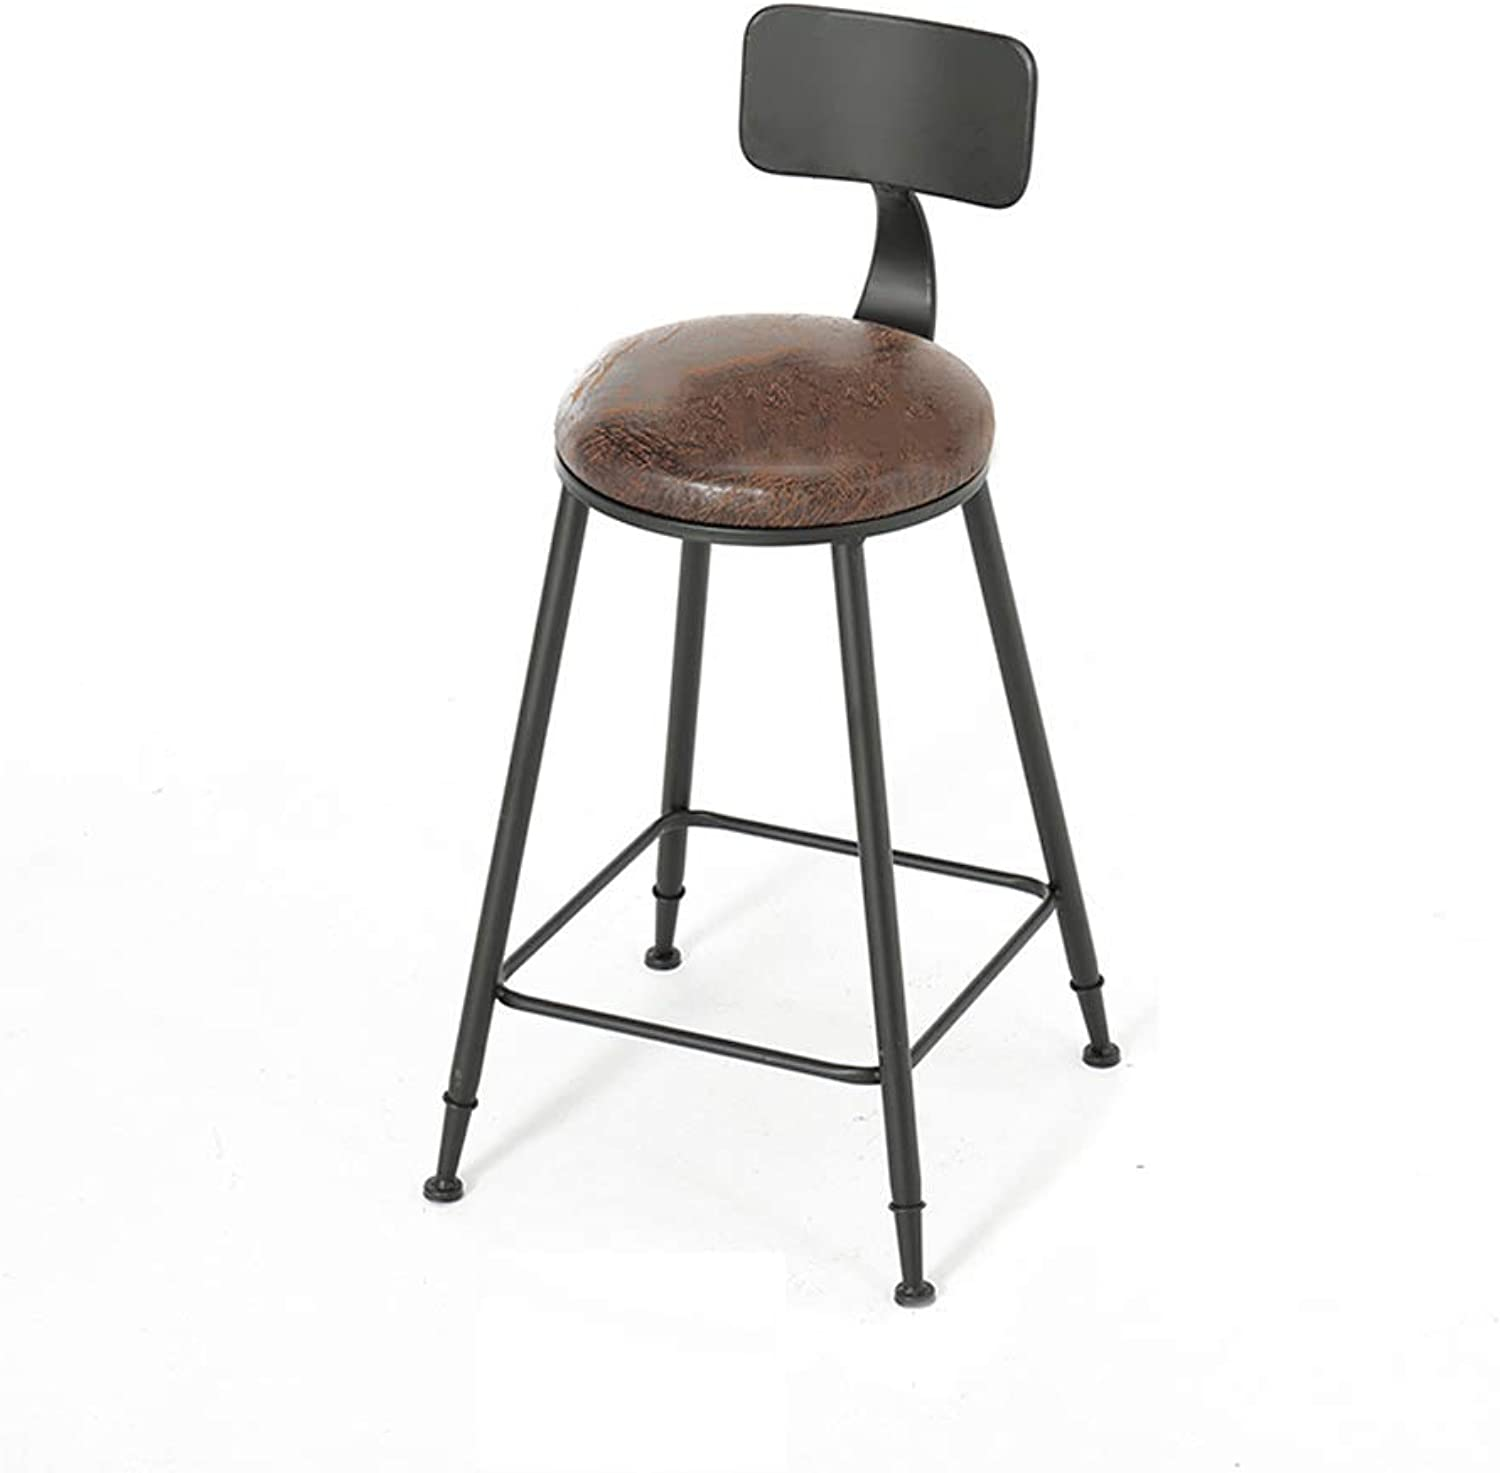 SYF Barstools Iron High Chair Personality Bar High Stool Solid Wood Bar Stool Modern Minimalist Bar Stool Bar Chair A+ (Size   45CM)